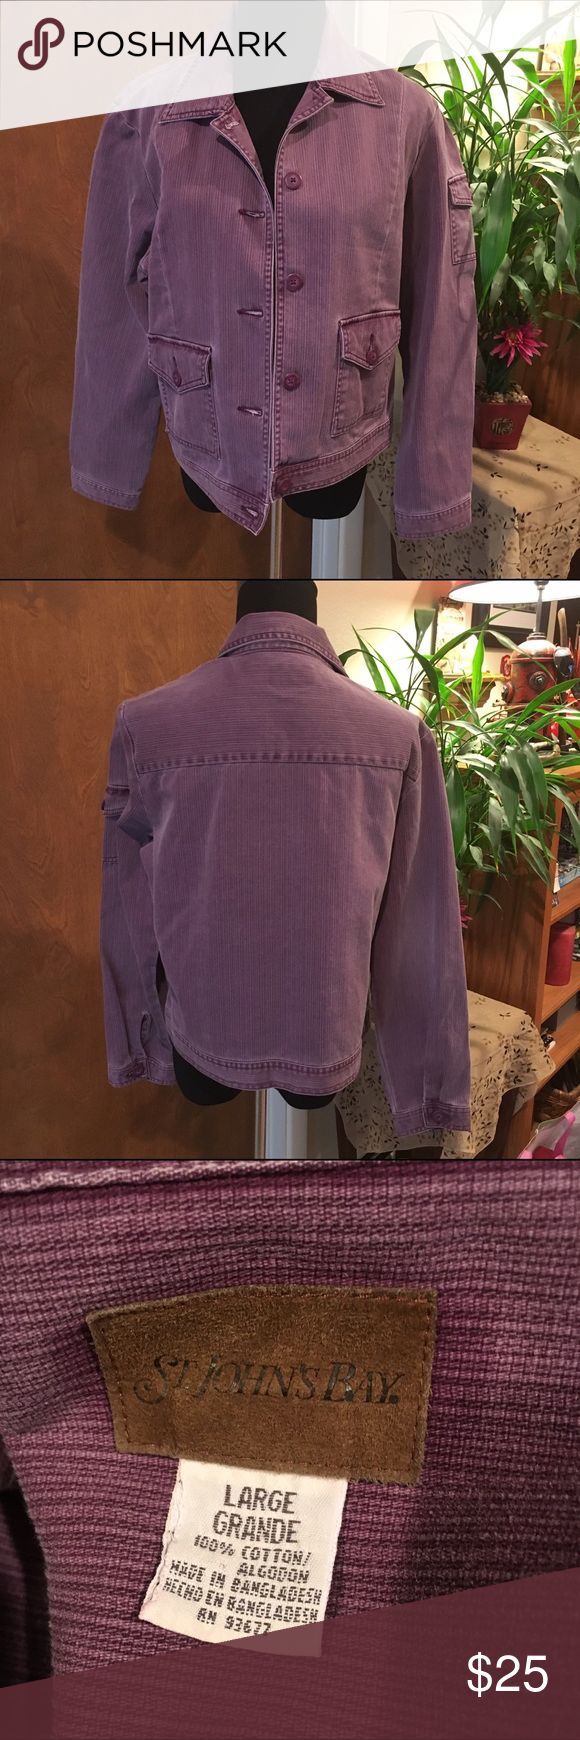 "St Johns Bay, lavender jean jacket. Size L This jean jacket is a pretty lavender. Measurements from shoulder to arm 23.5"", bust laid flat is 22"", and shoulder to hem is 21. St Johns Bay Jackets & Coats Jean Jackets"